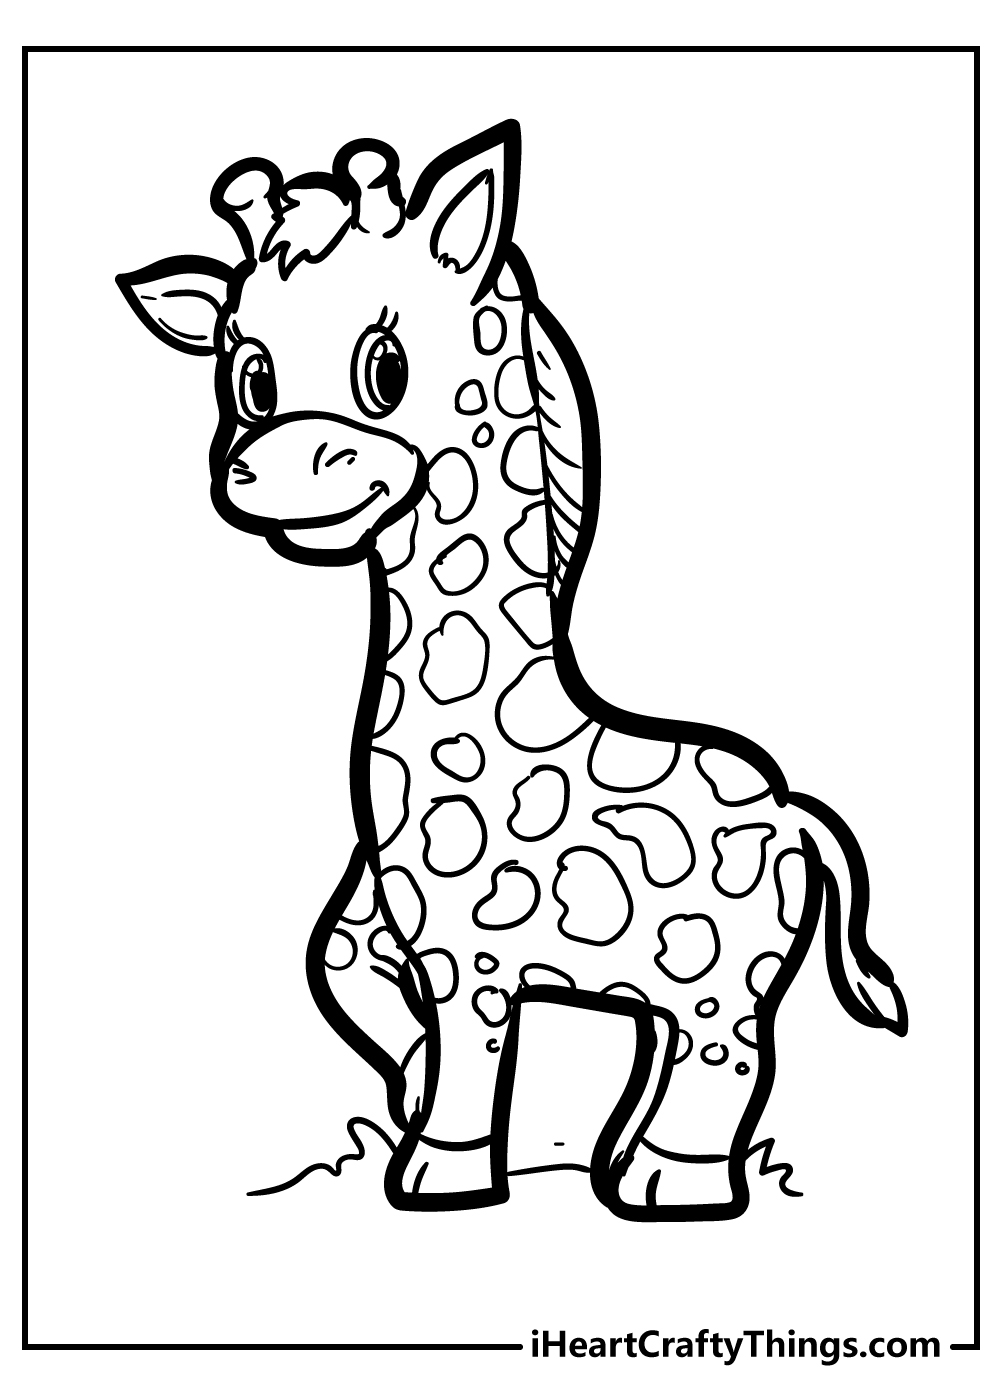 giraffe coloring updated girraffe pic of cursive letters free color unicorn monument coloring pages Girraffe Coloring Page